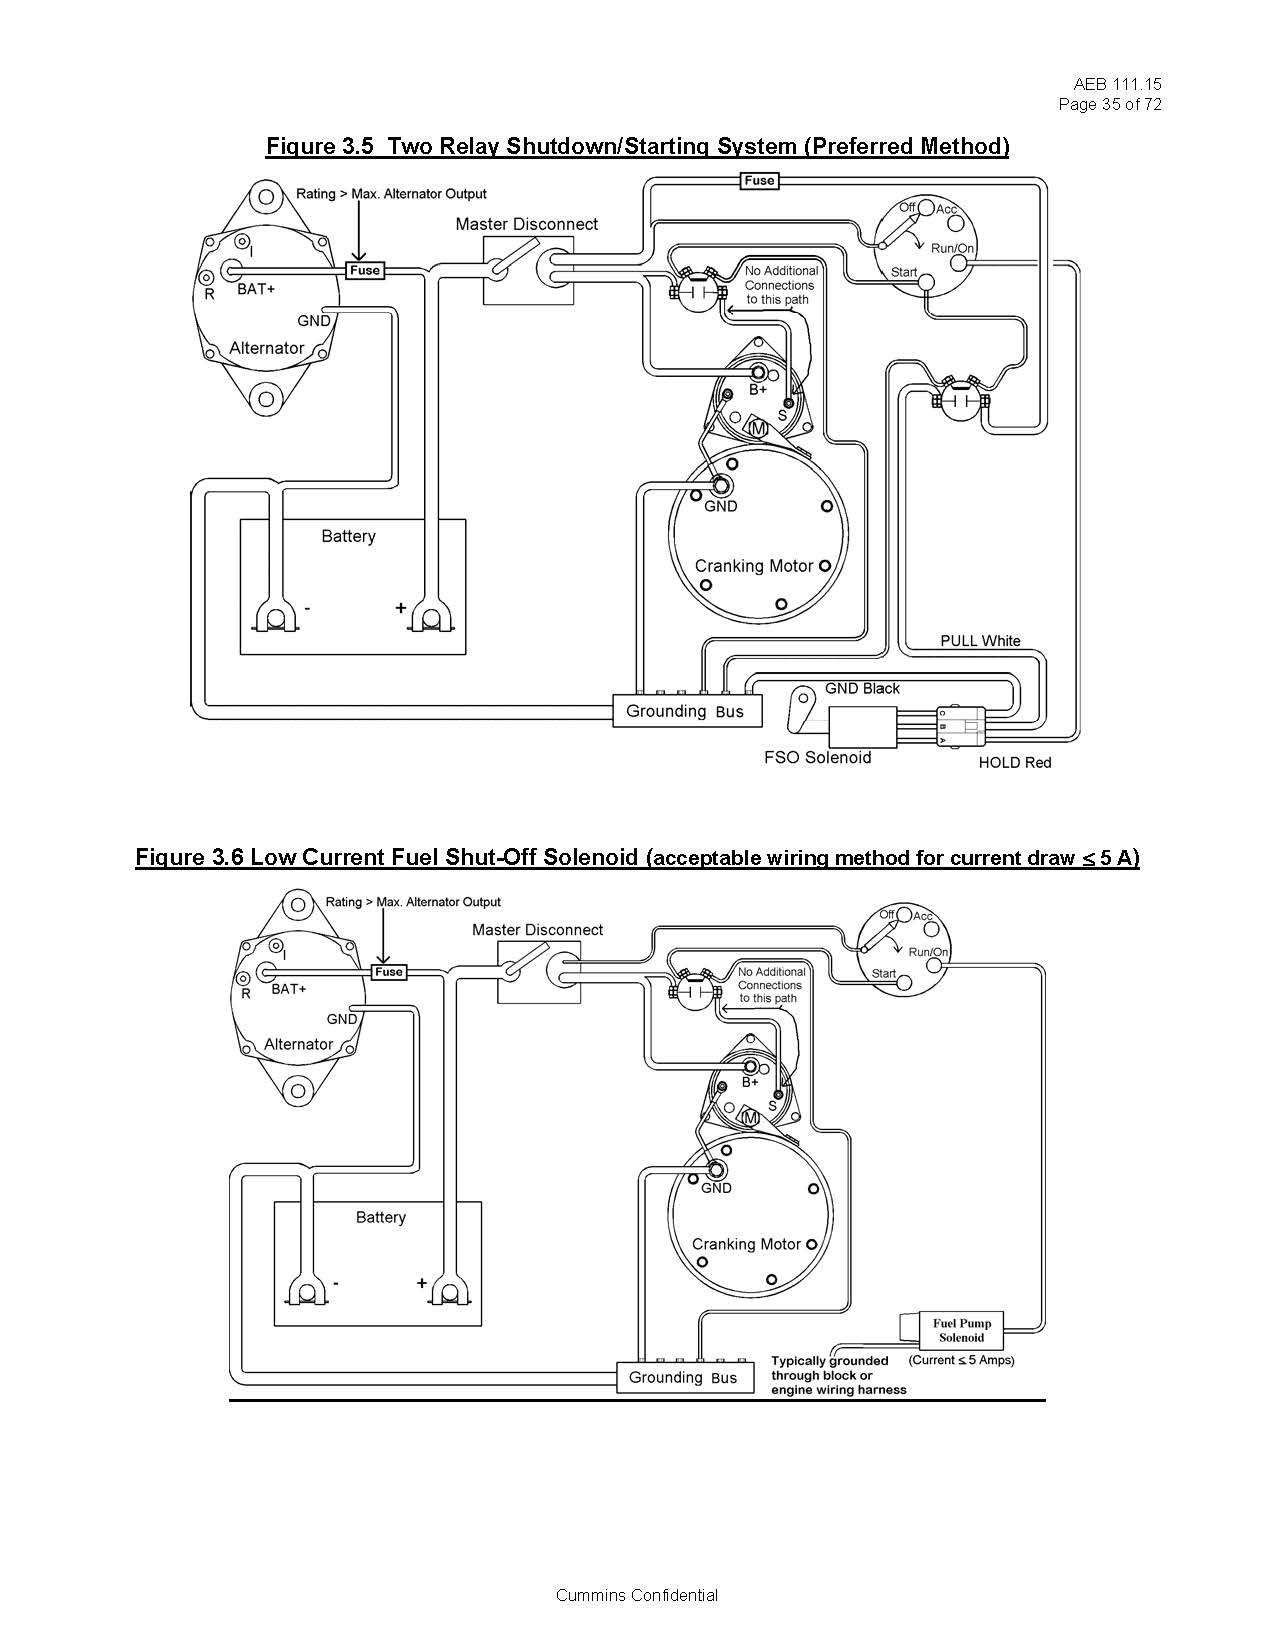 250 Skid Steer Wiring Diagram Together With Heat Pump Wiring Diagram